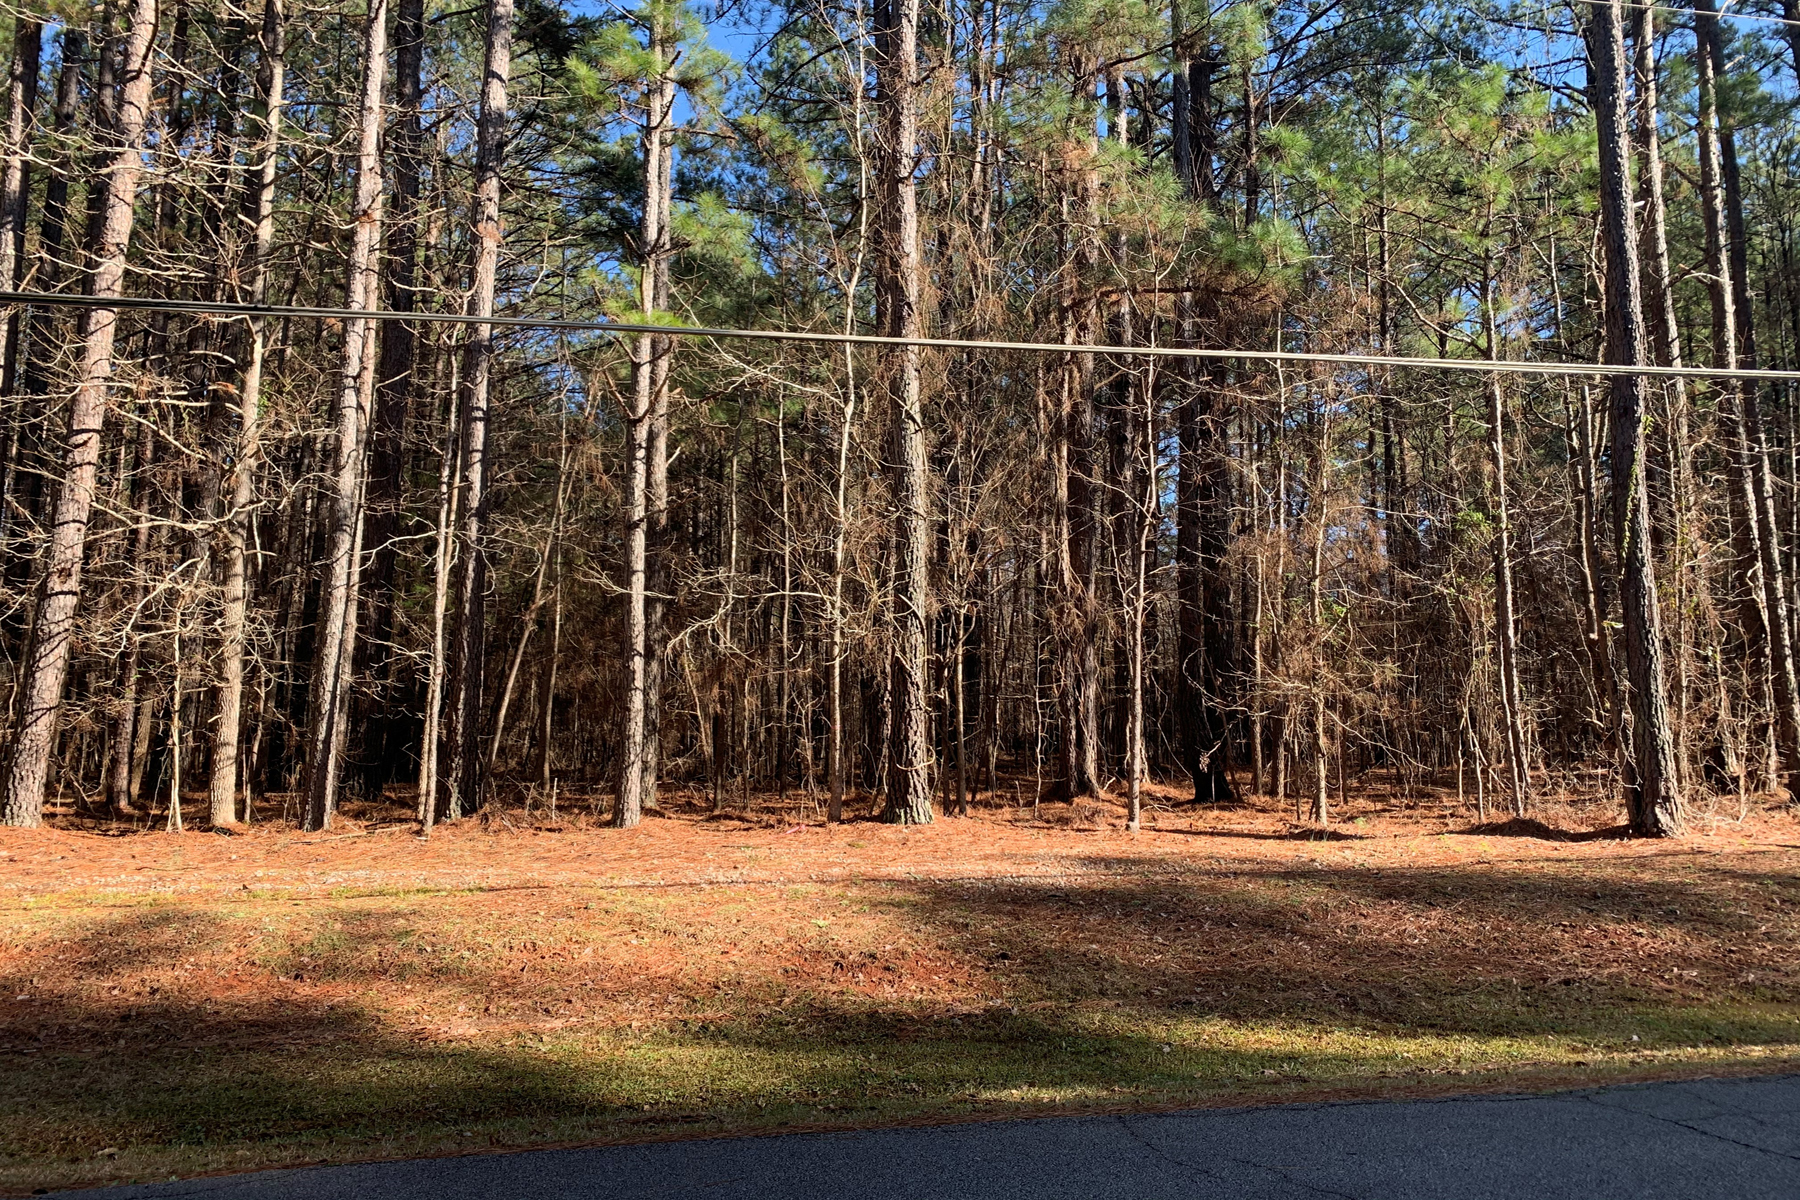 Land for Sale at 60+/- Acres With Incredible Residential Development Potential 426 Bernhard Road Fayetteville, Georgia 30215 United States